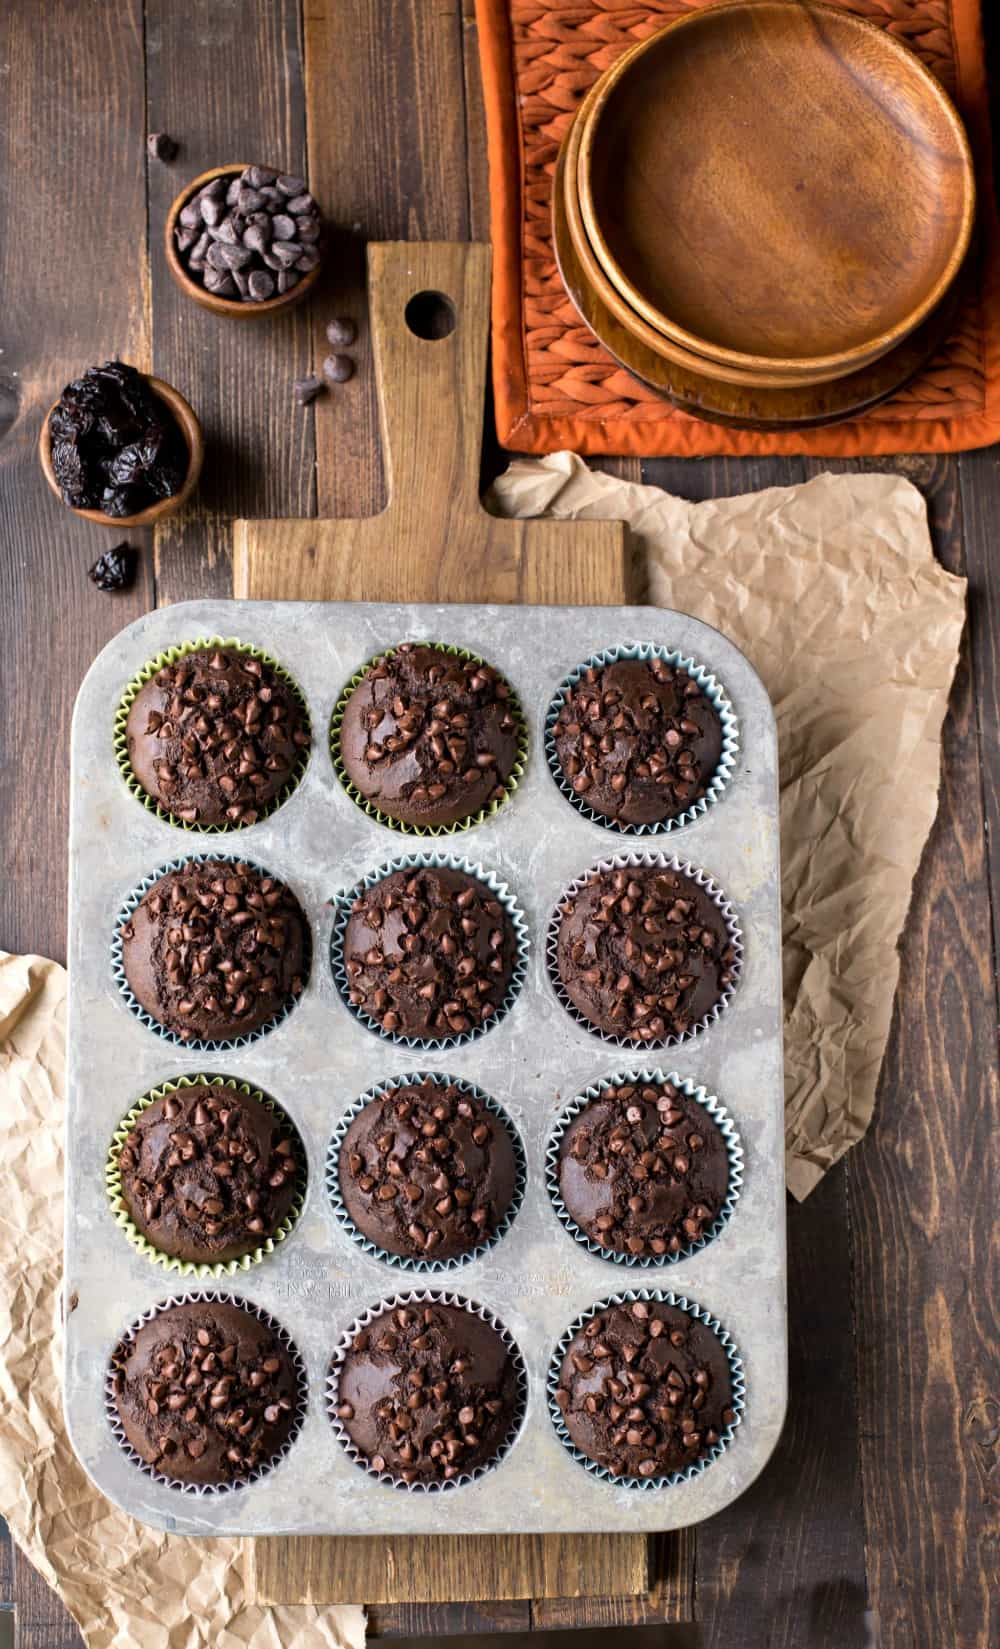 Chocolate Chocolate Cherry Muffins